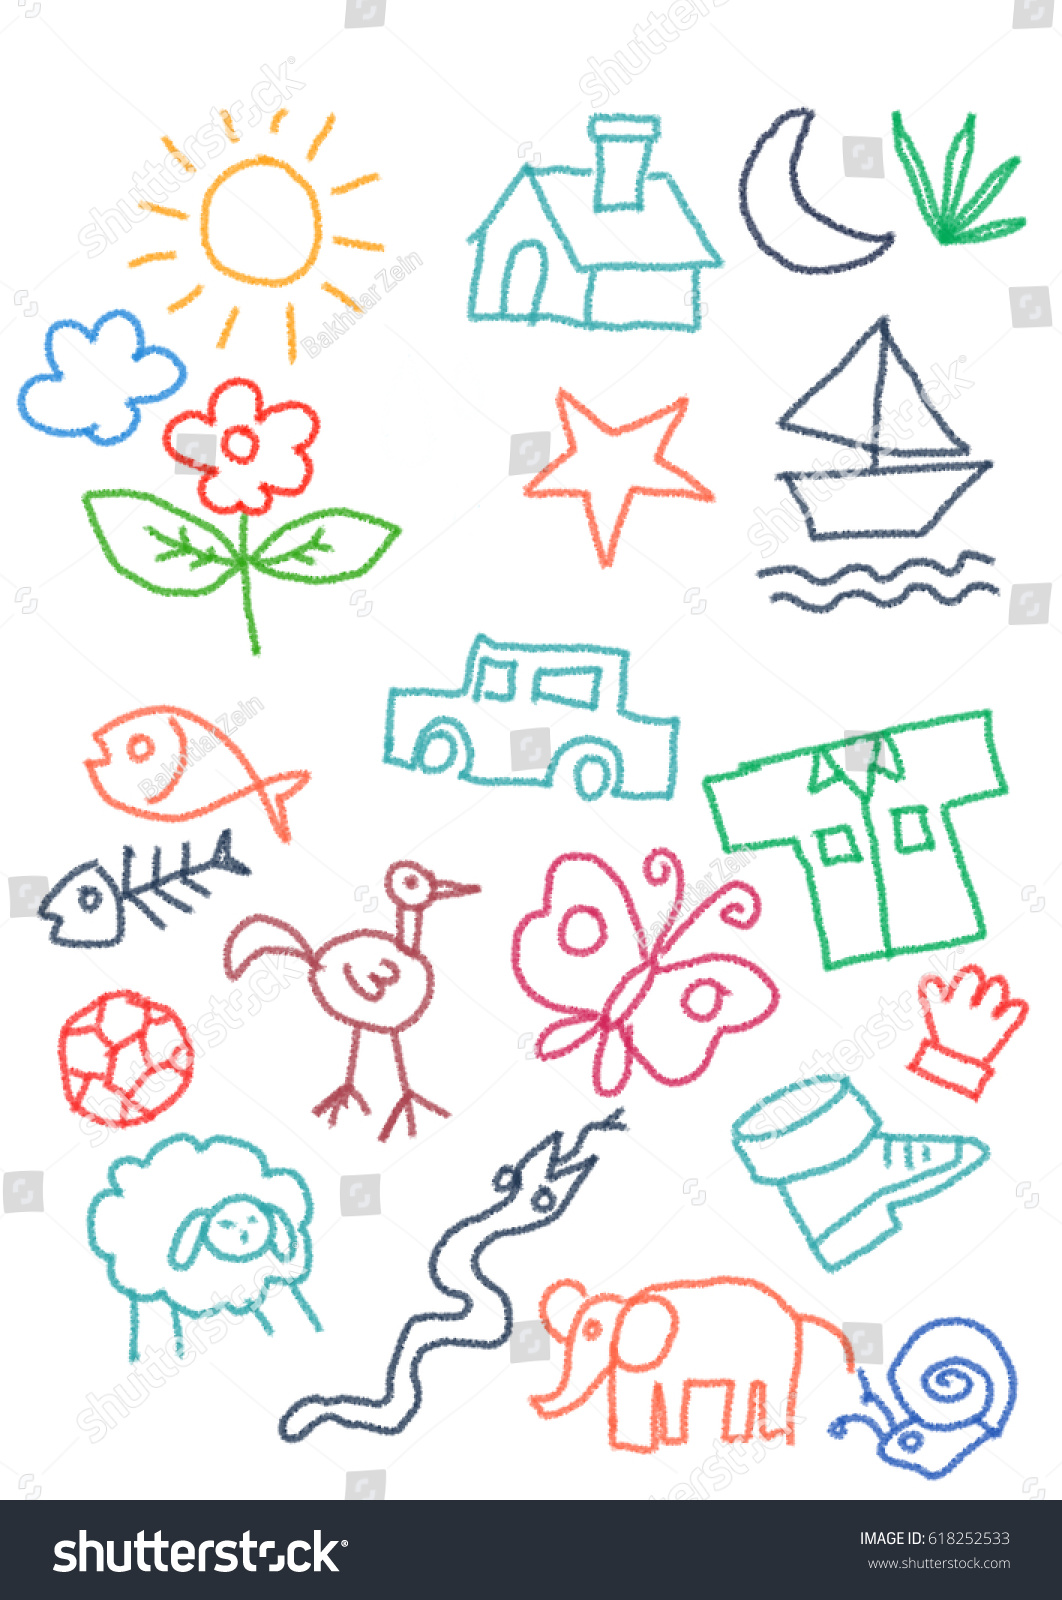 Kids Doodle Colorfull Random Object Crayon Stock Illustration Butterfly Diagram For Icon Collection Car Sun Home